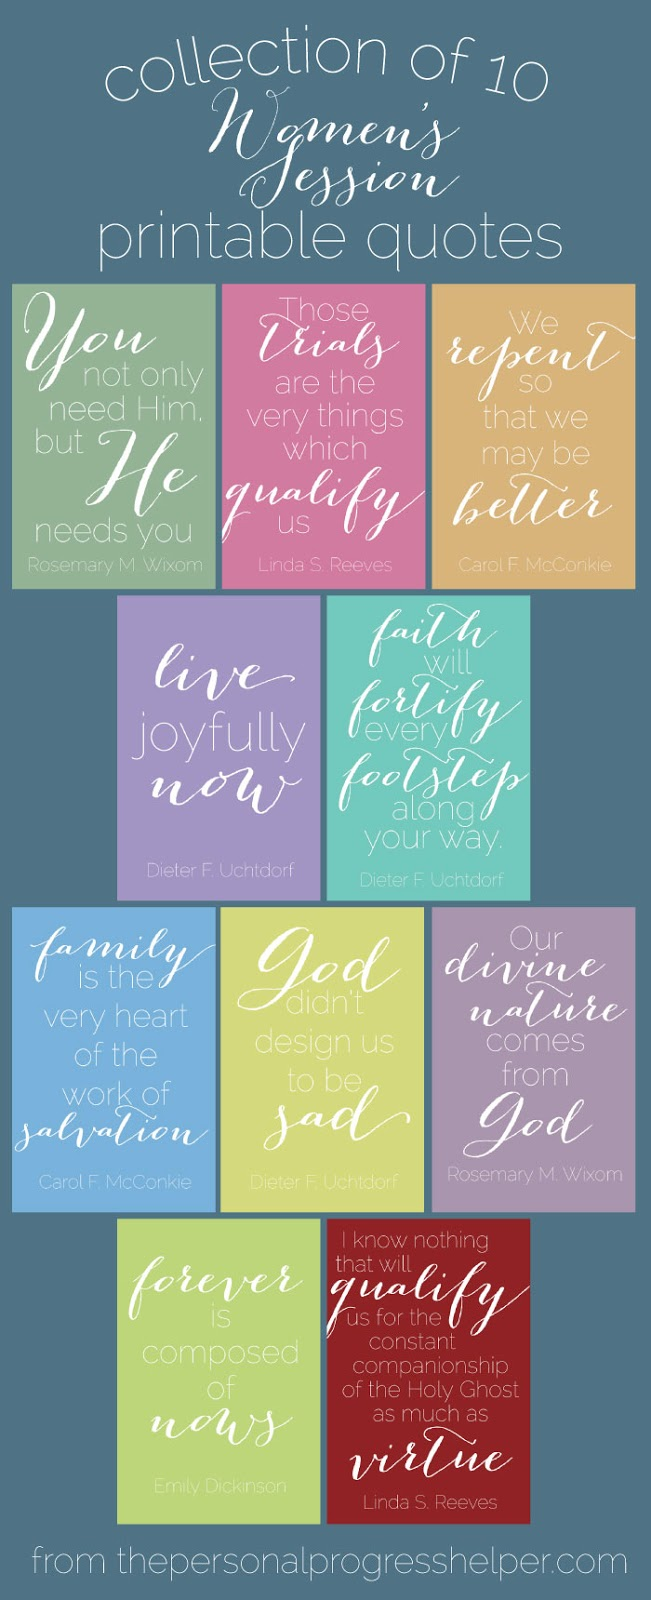 Collection of 10 Beautiful Women's Session Printable Quotes